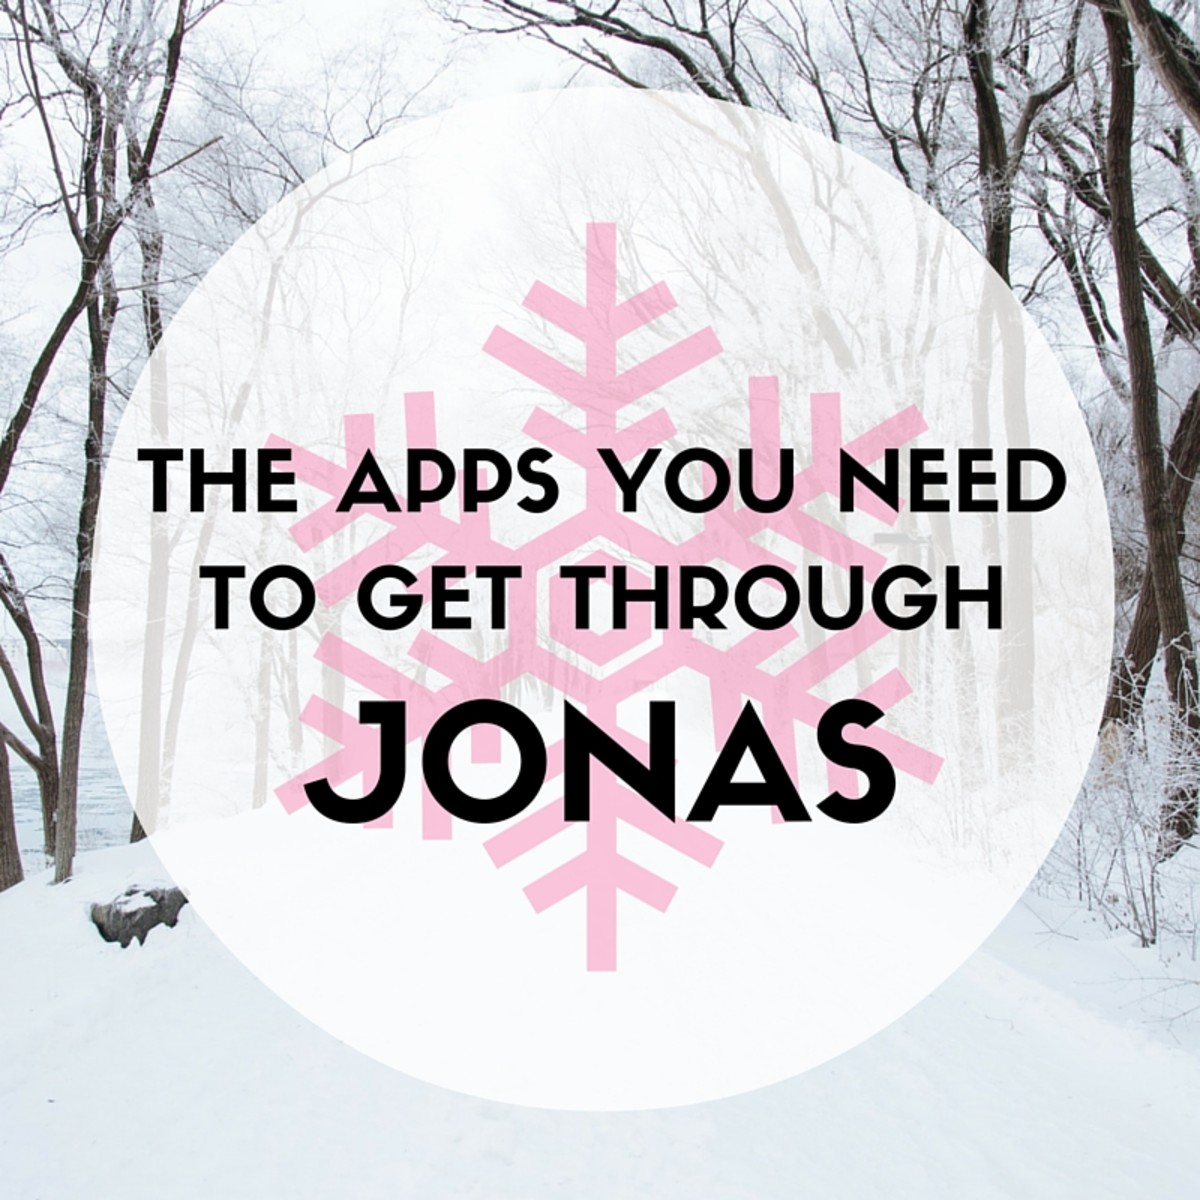 APPS YOU NEED TO GET THROUGH JONAS